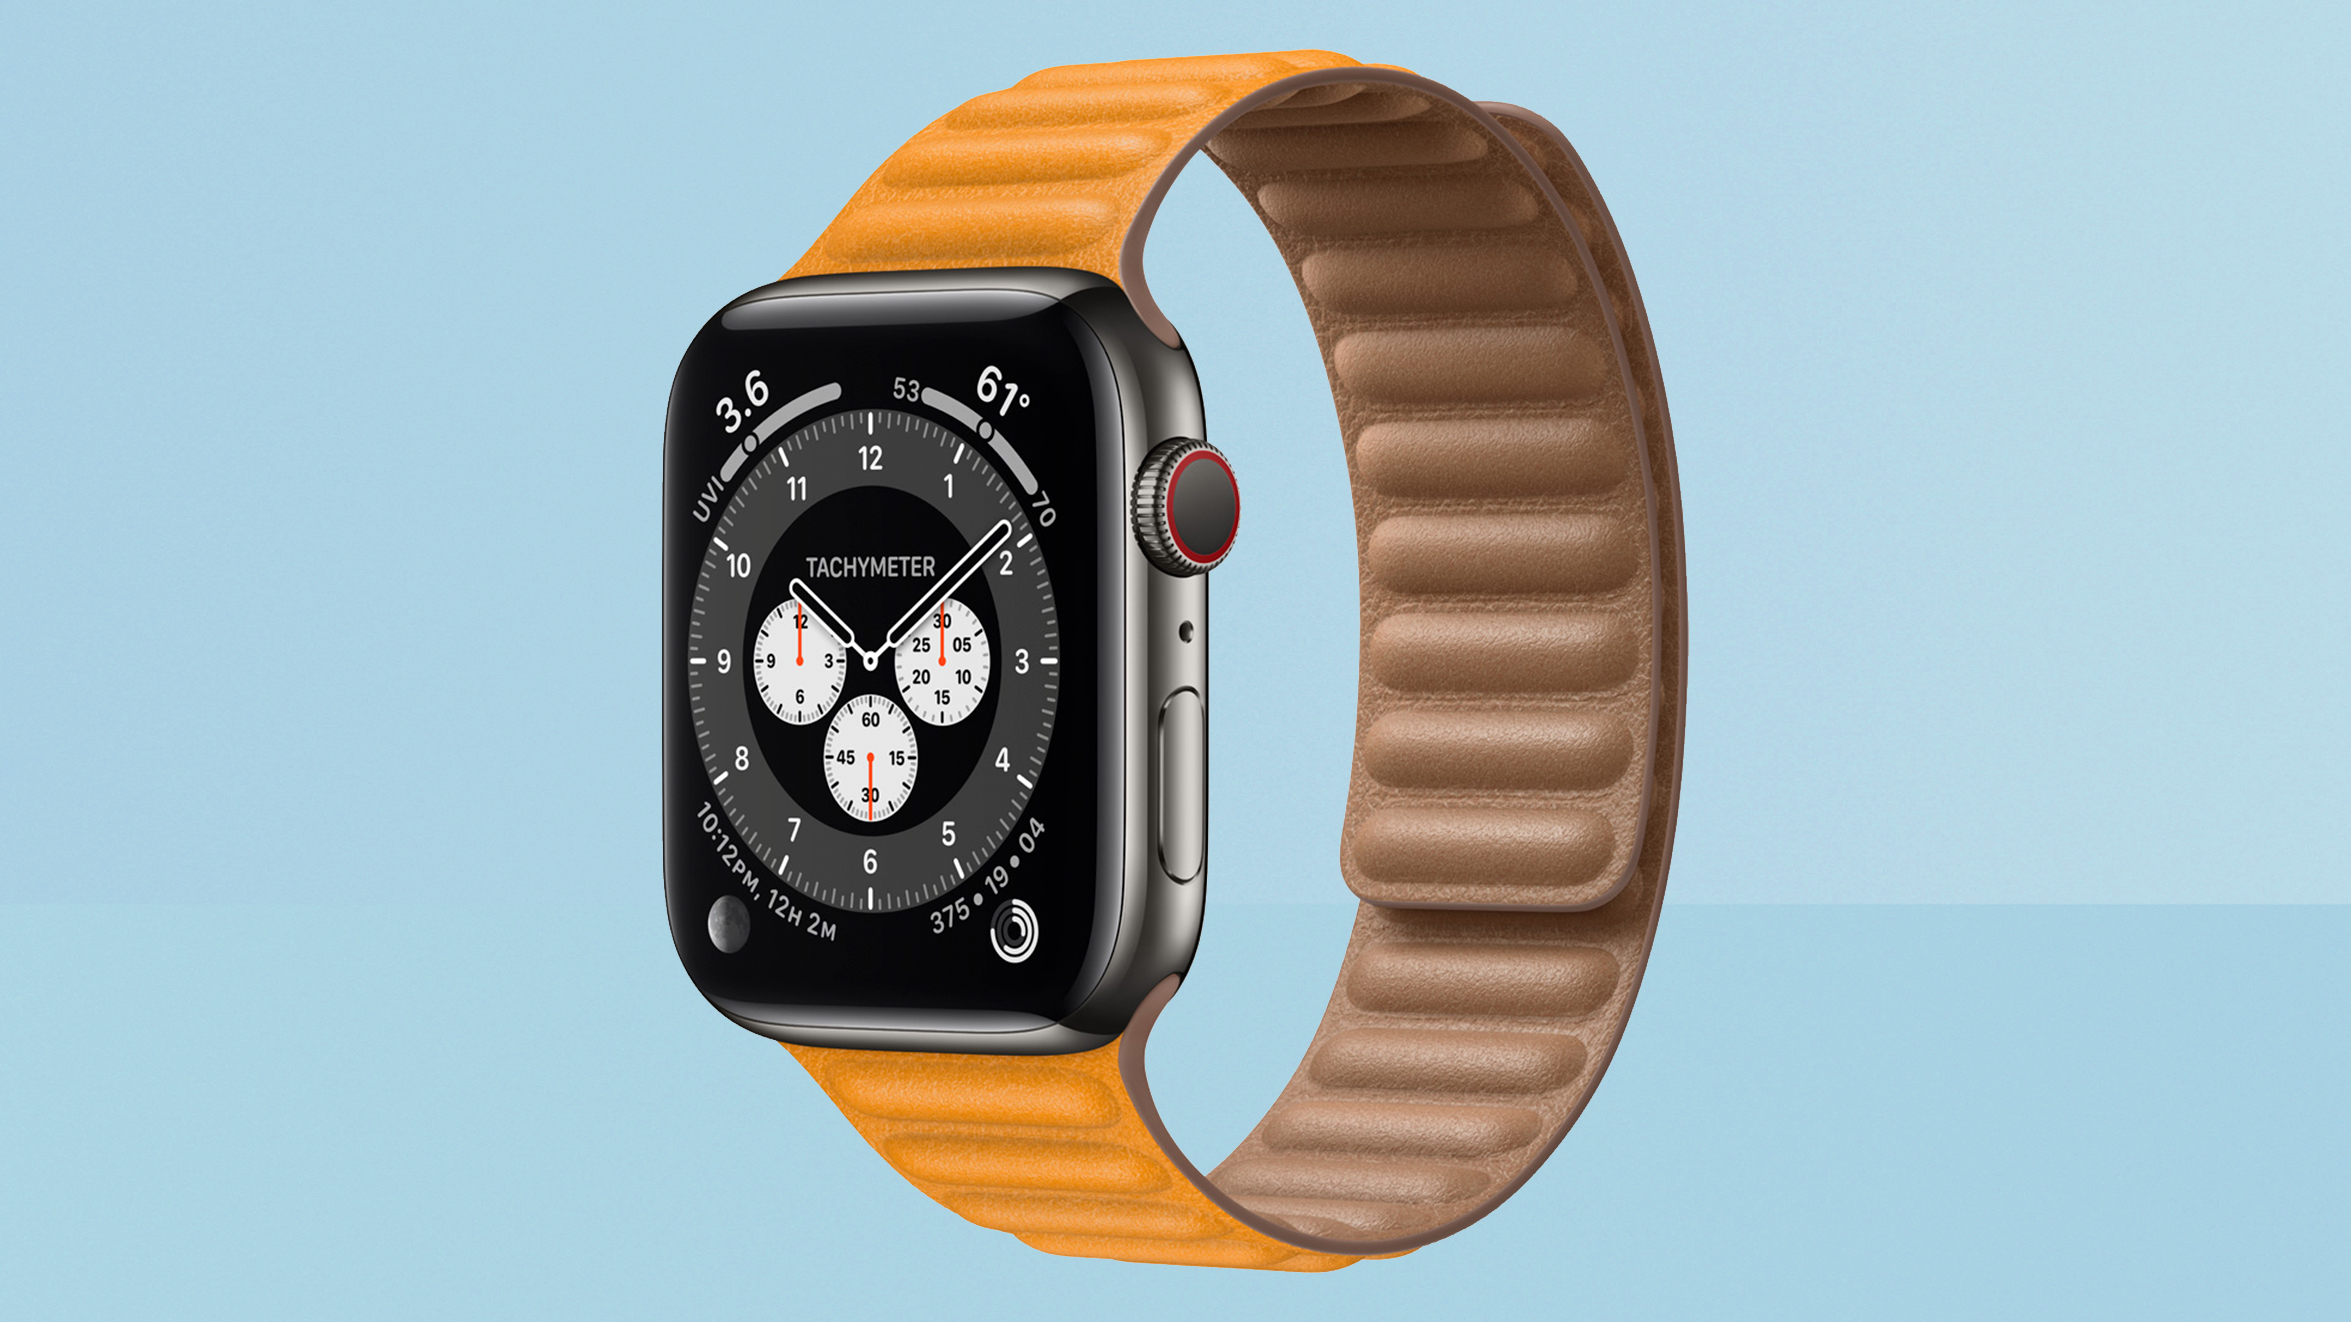 Apple Watch Series 6 review: the best smartwatch, but it's